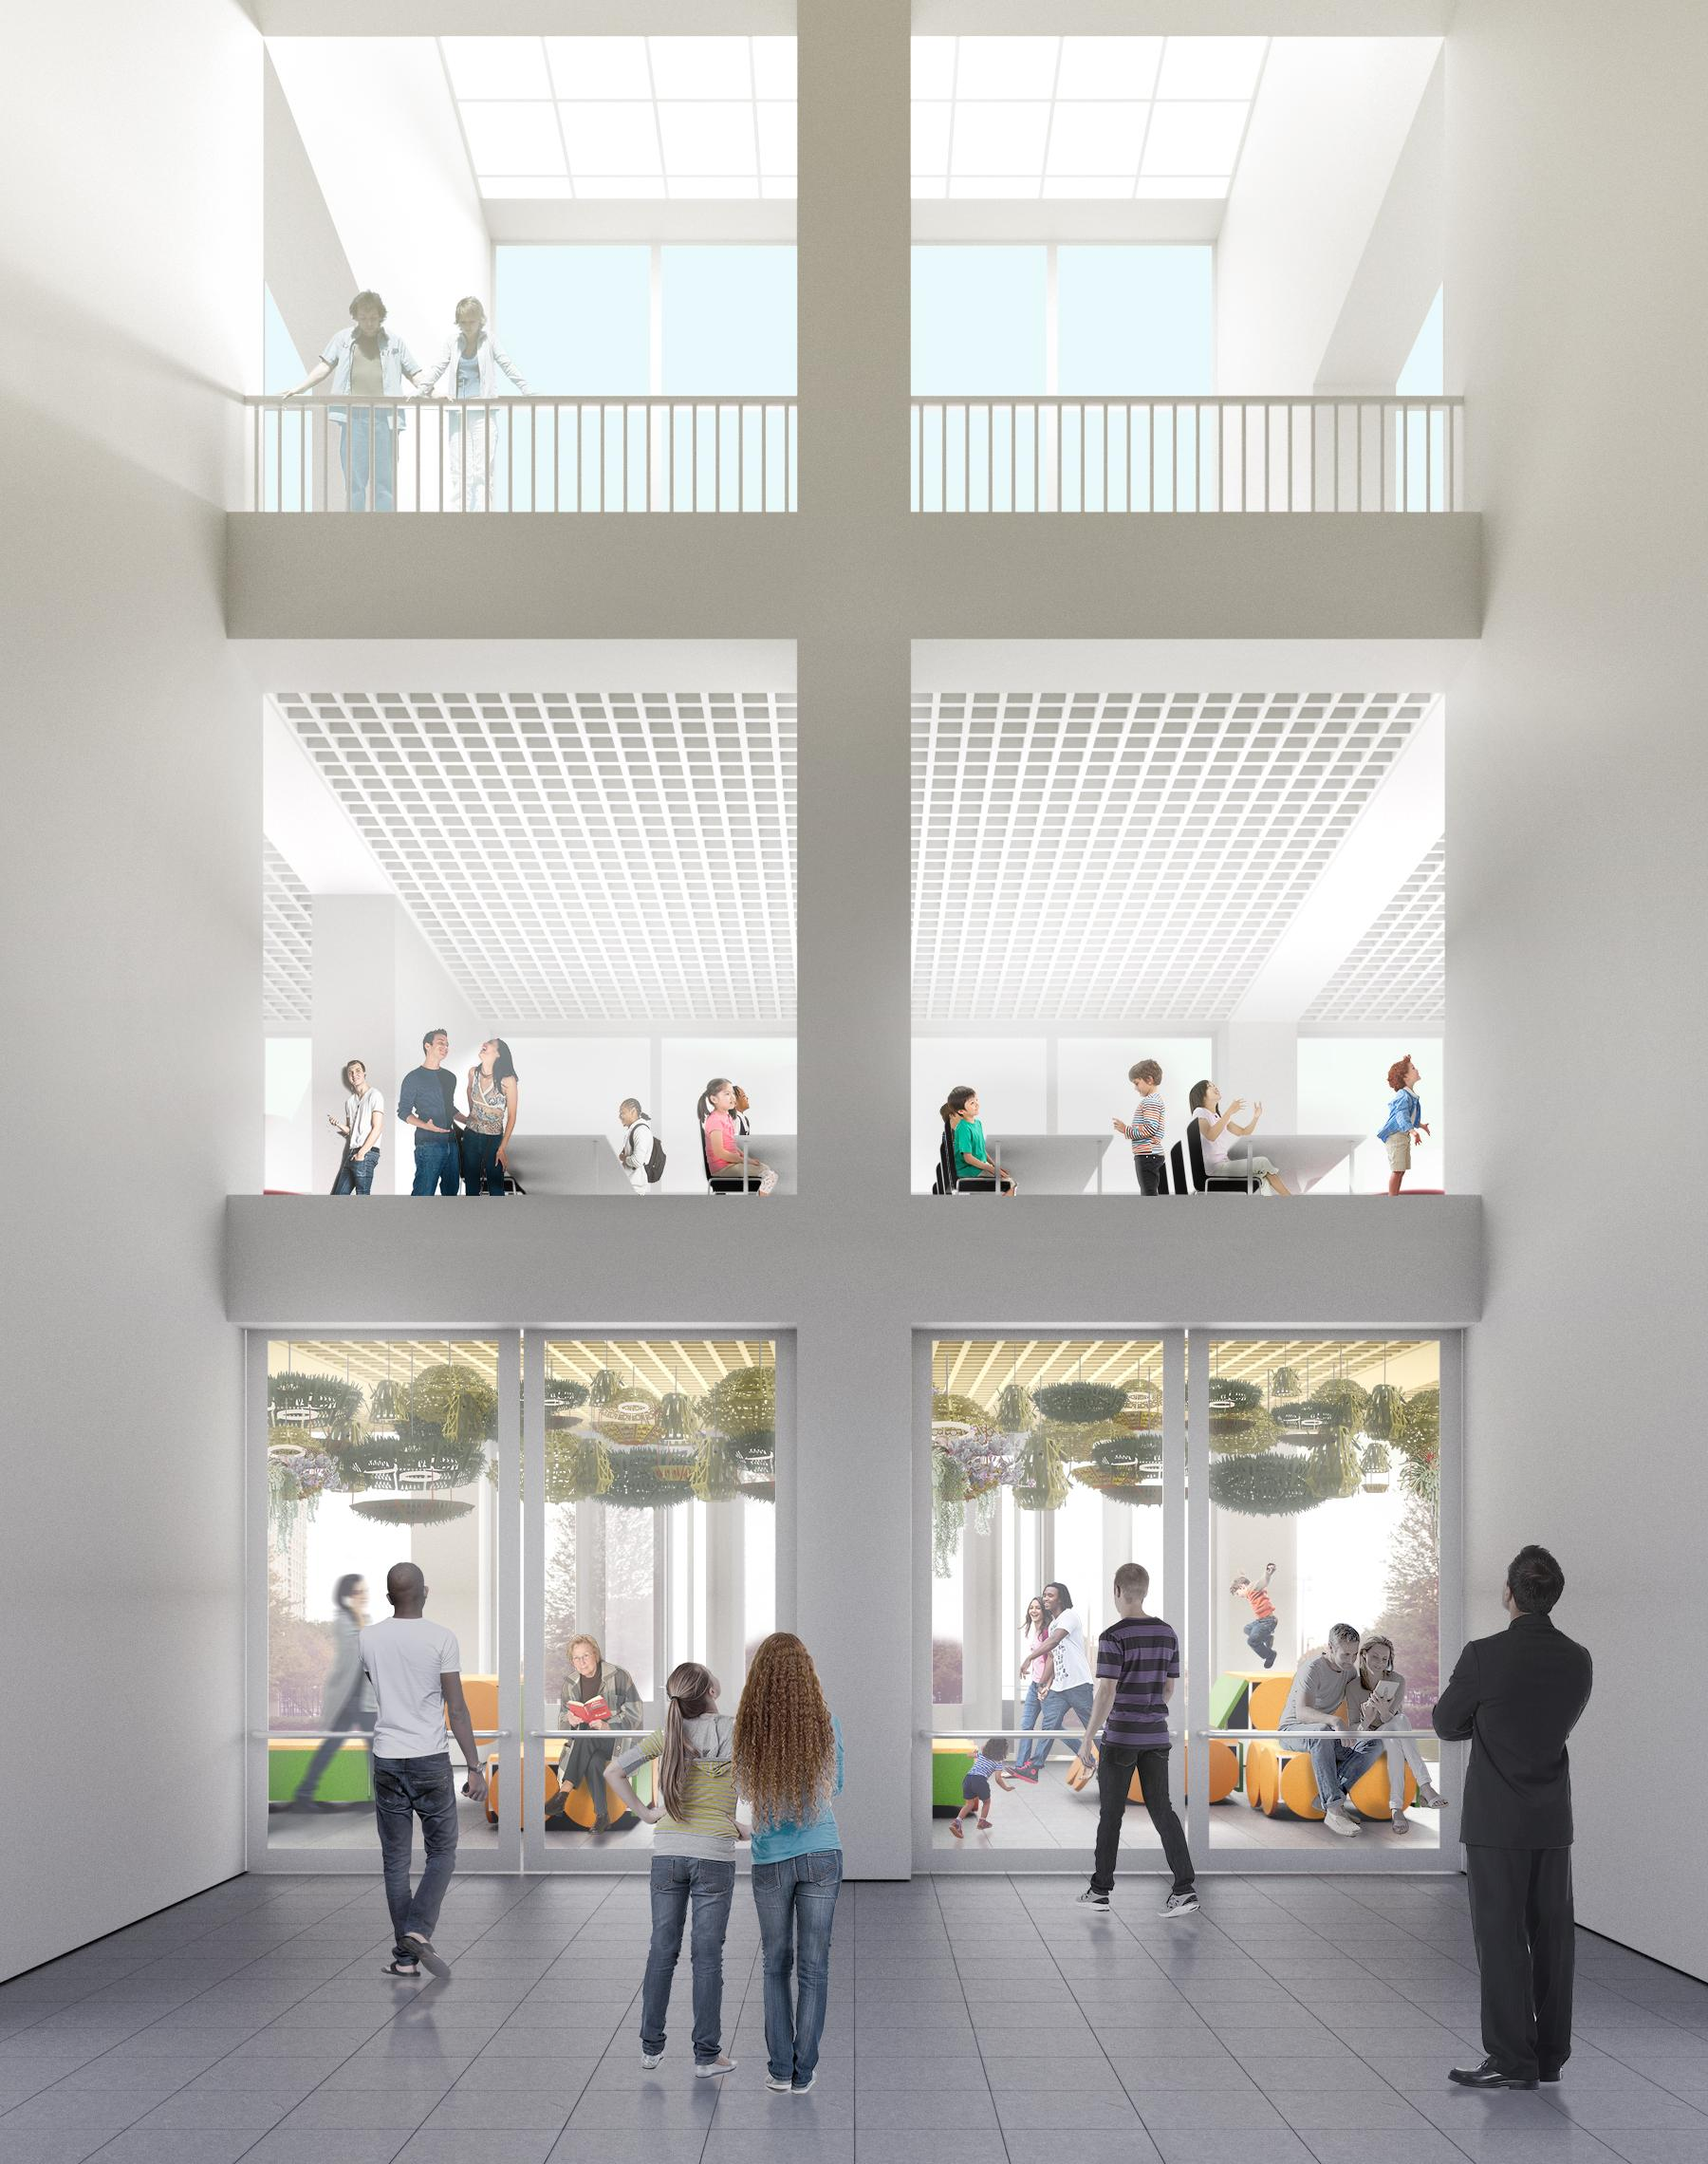 A graphic rendering of a three-story atrium with white walls and windows that shows people on each level.